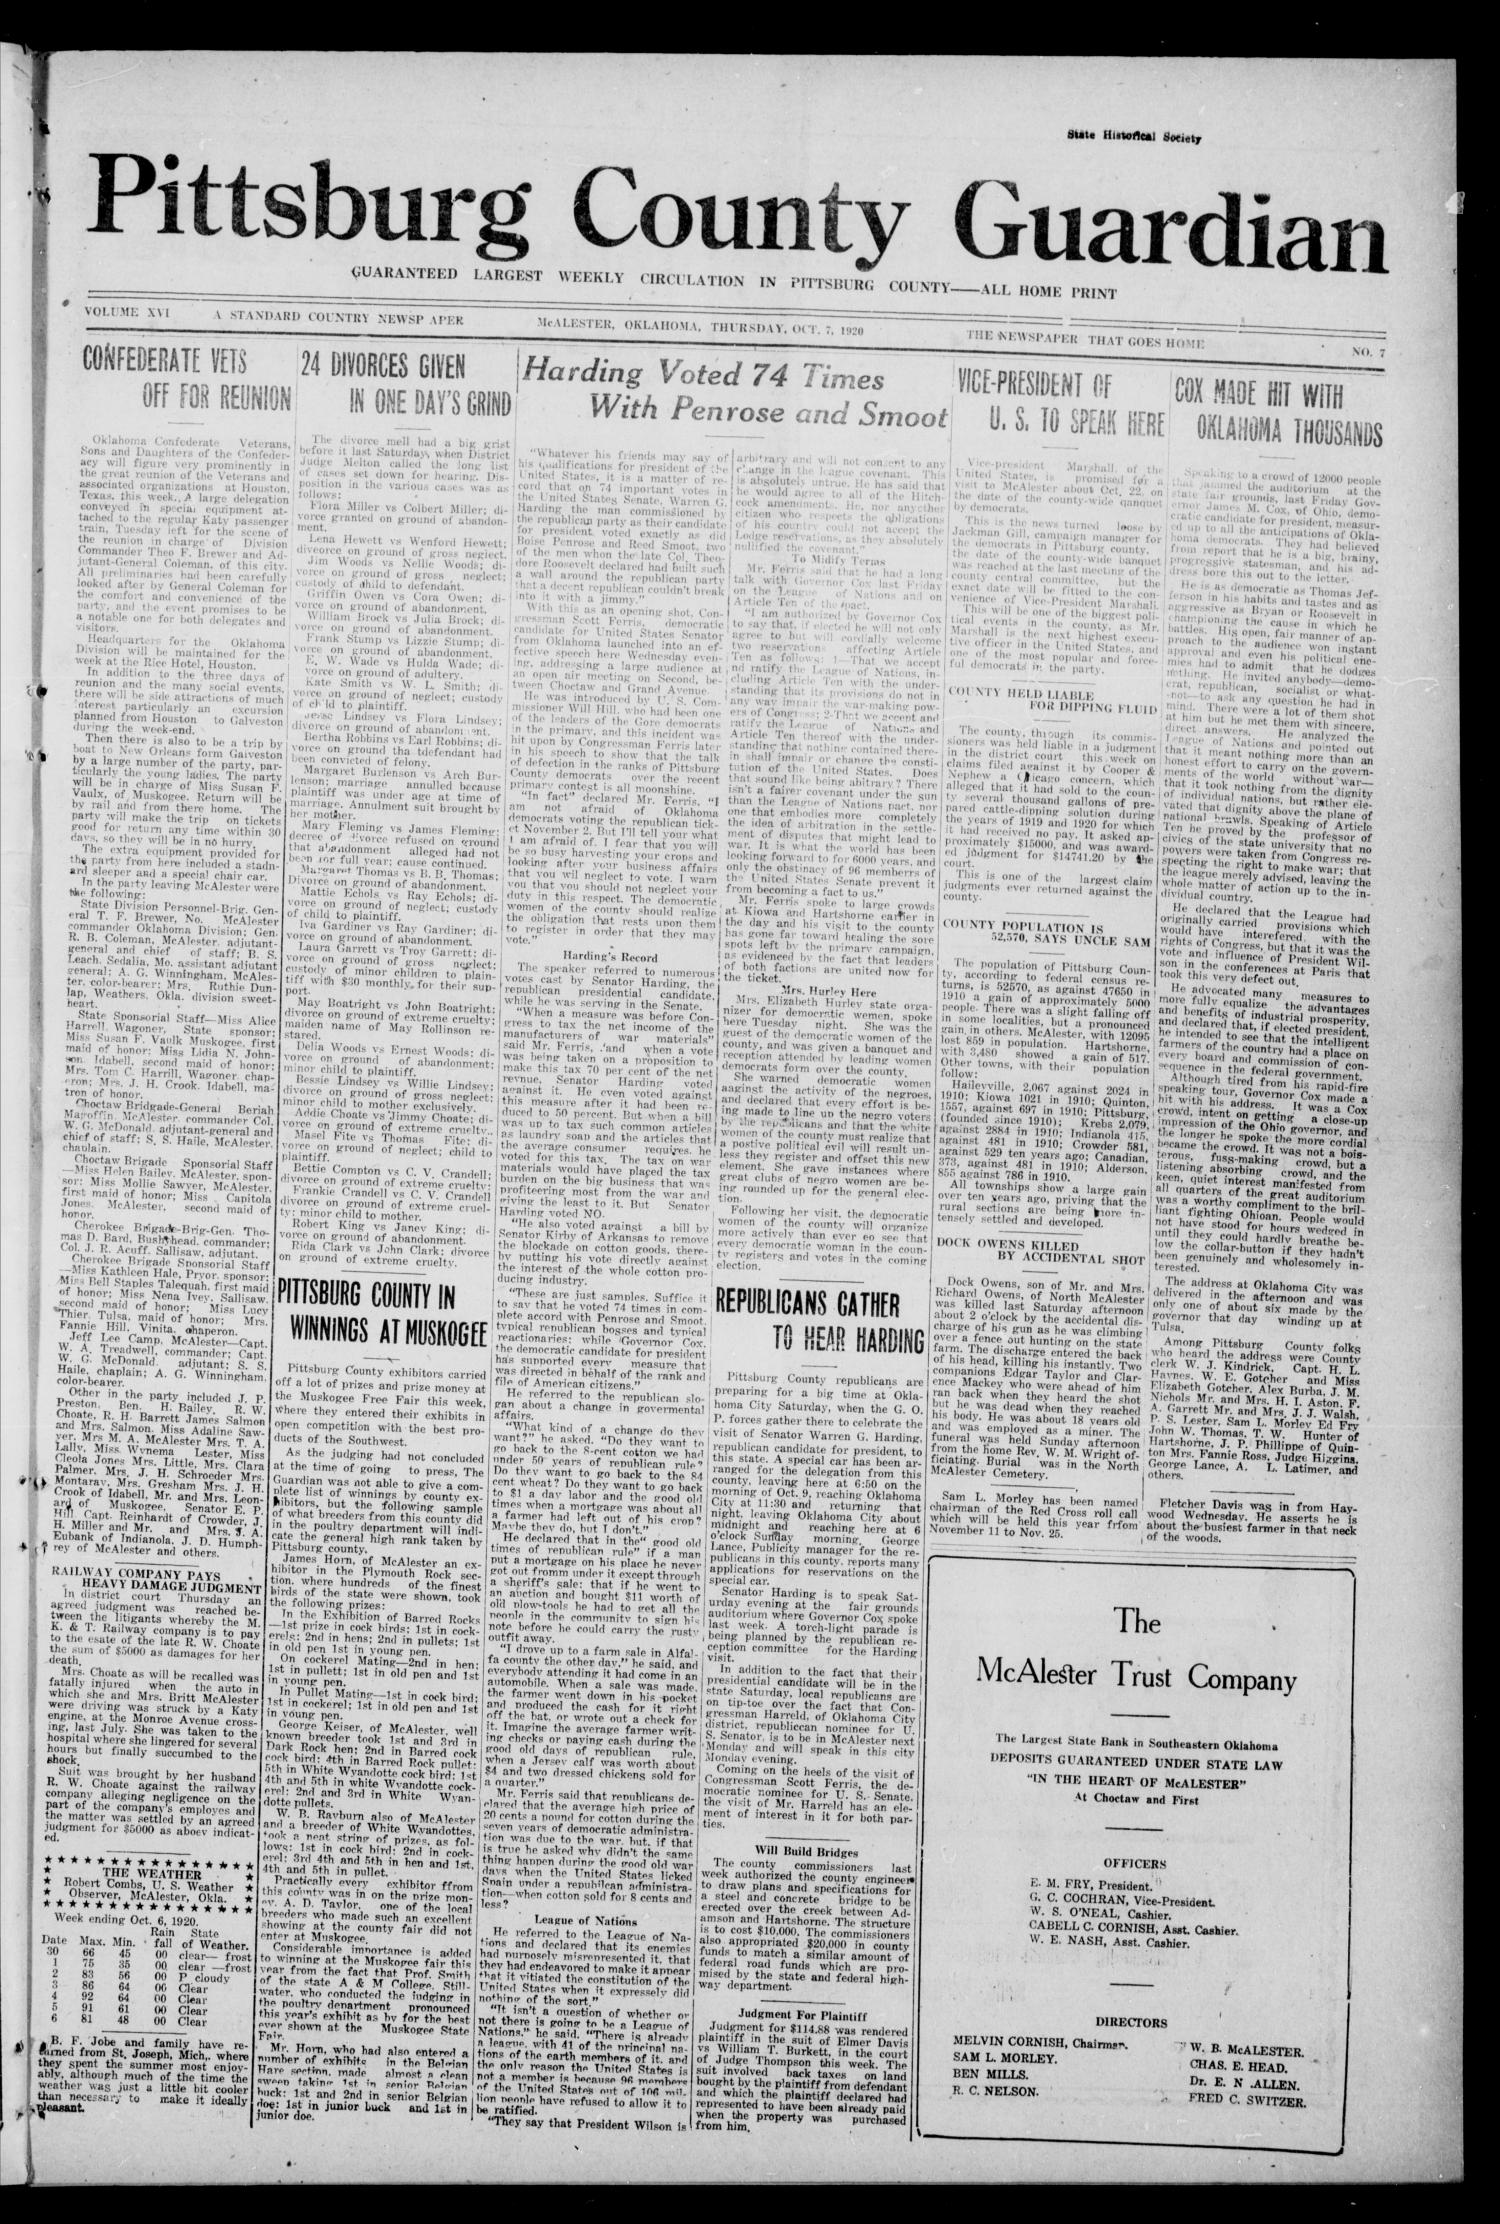 Pittsburg County Guardian (McAlester, Okla.), Vol. 16, No. 7, Ed. 1 Thursday, October 7, 1920                                                                                                      [Sequence #]: 1 of 8